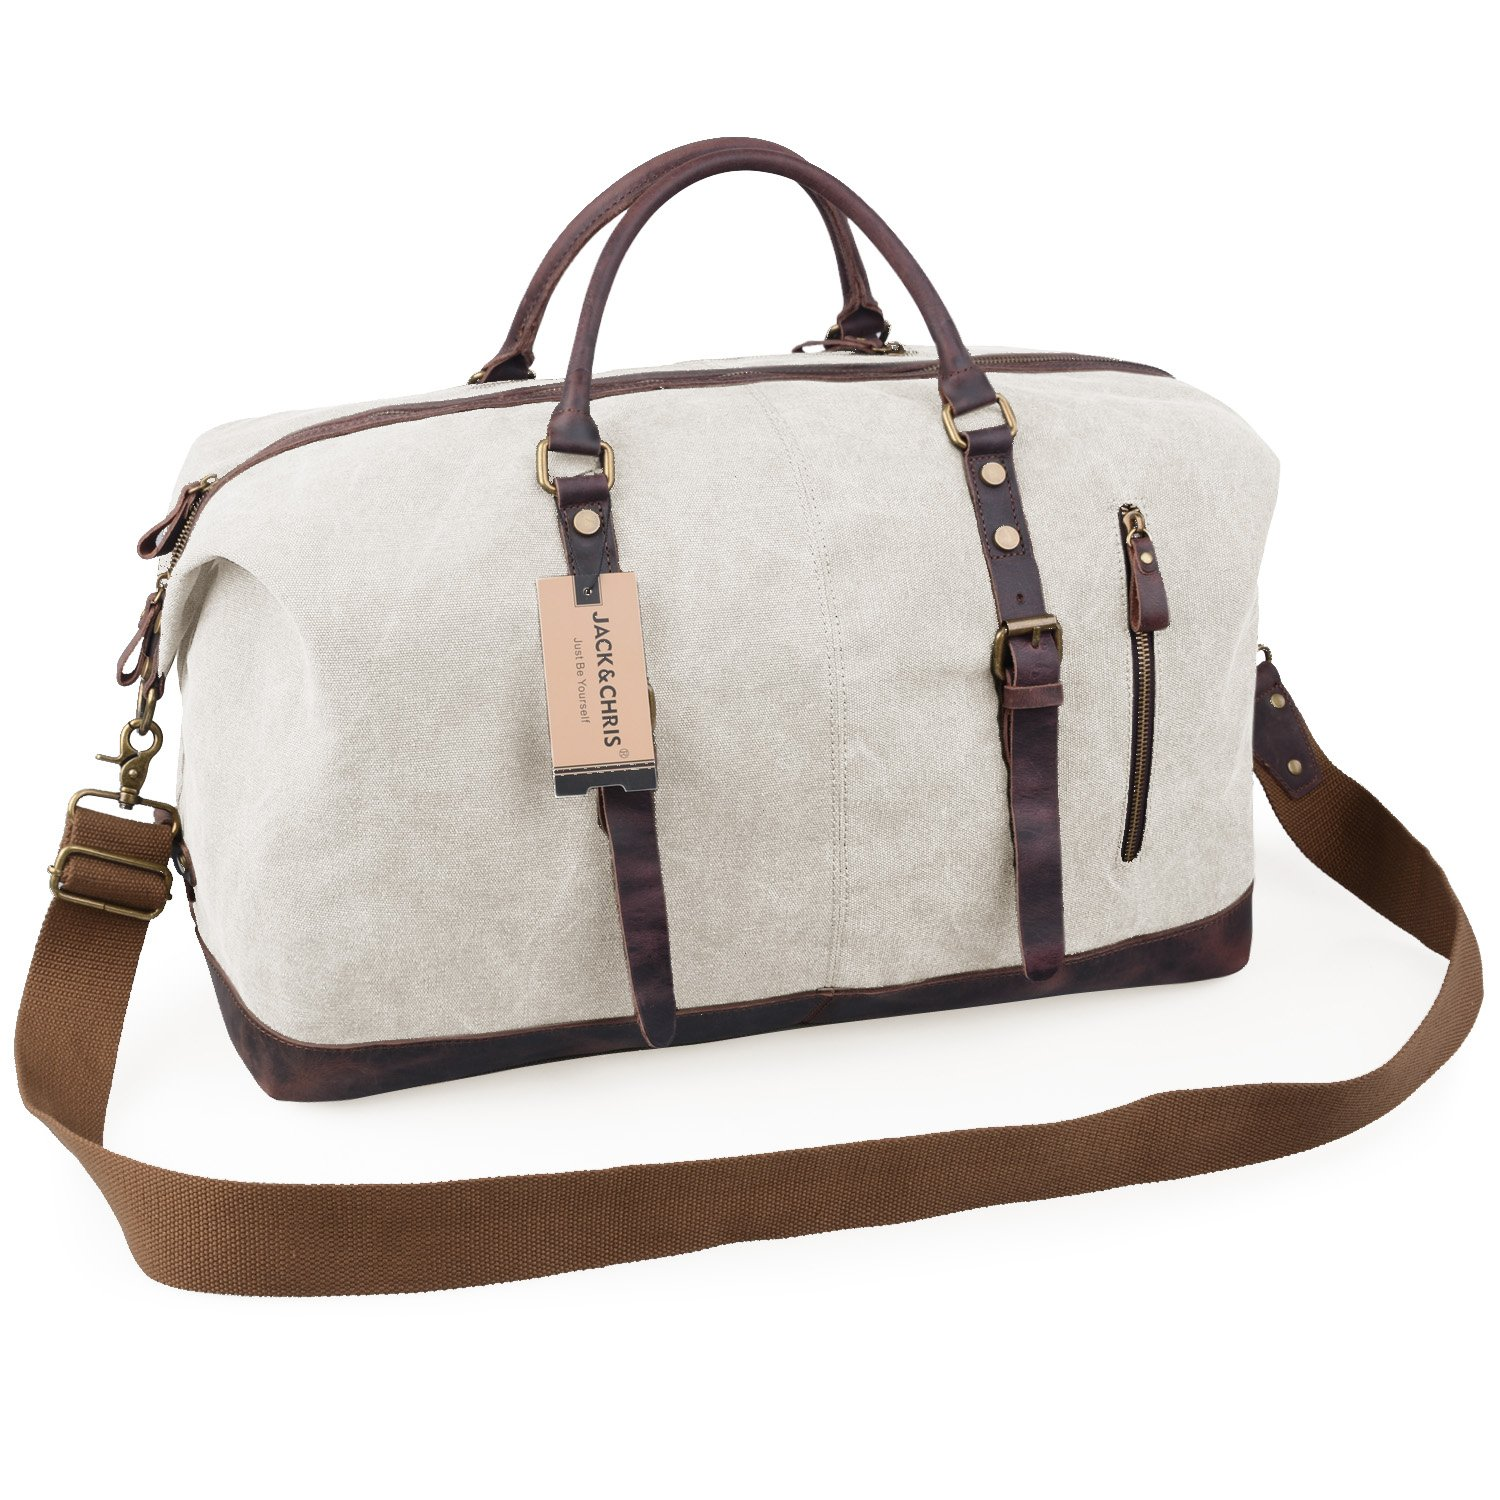 Jack&Chris Oversized Canvas Leather Trim Travel Tote Duffel shoulder handbag Weekend Bag CB1004